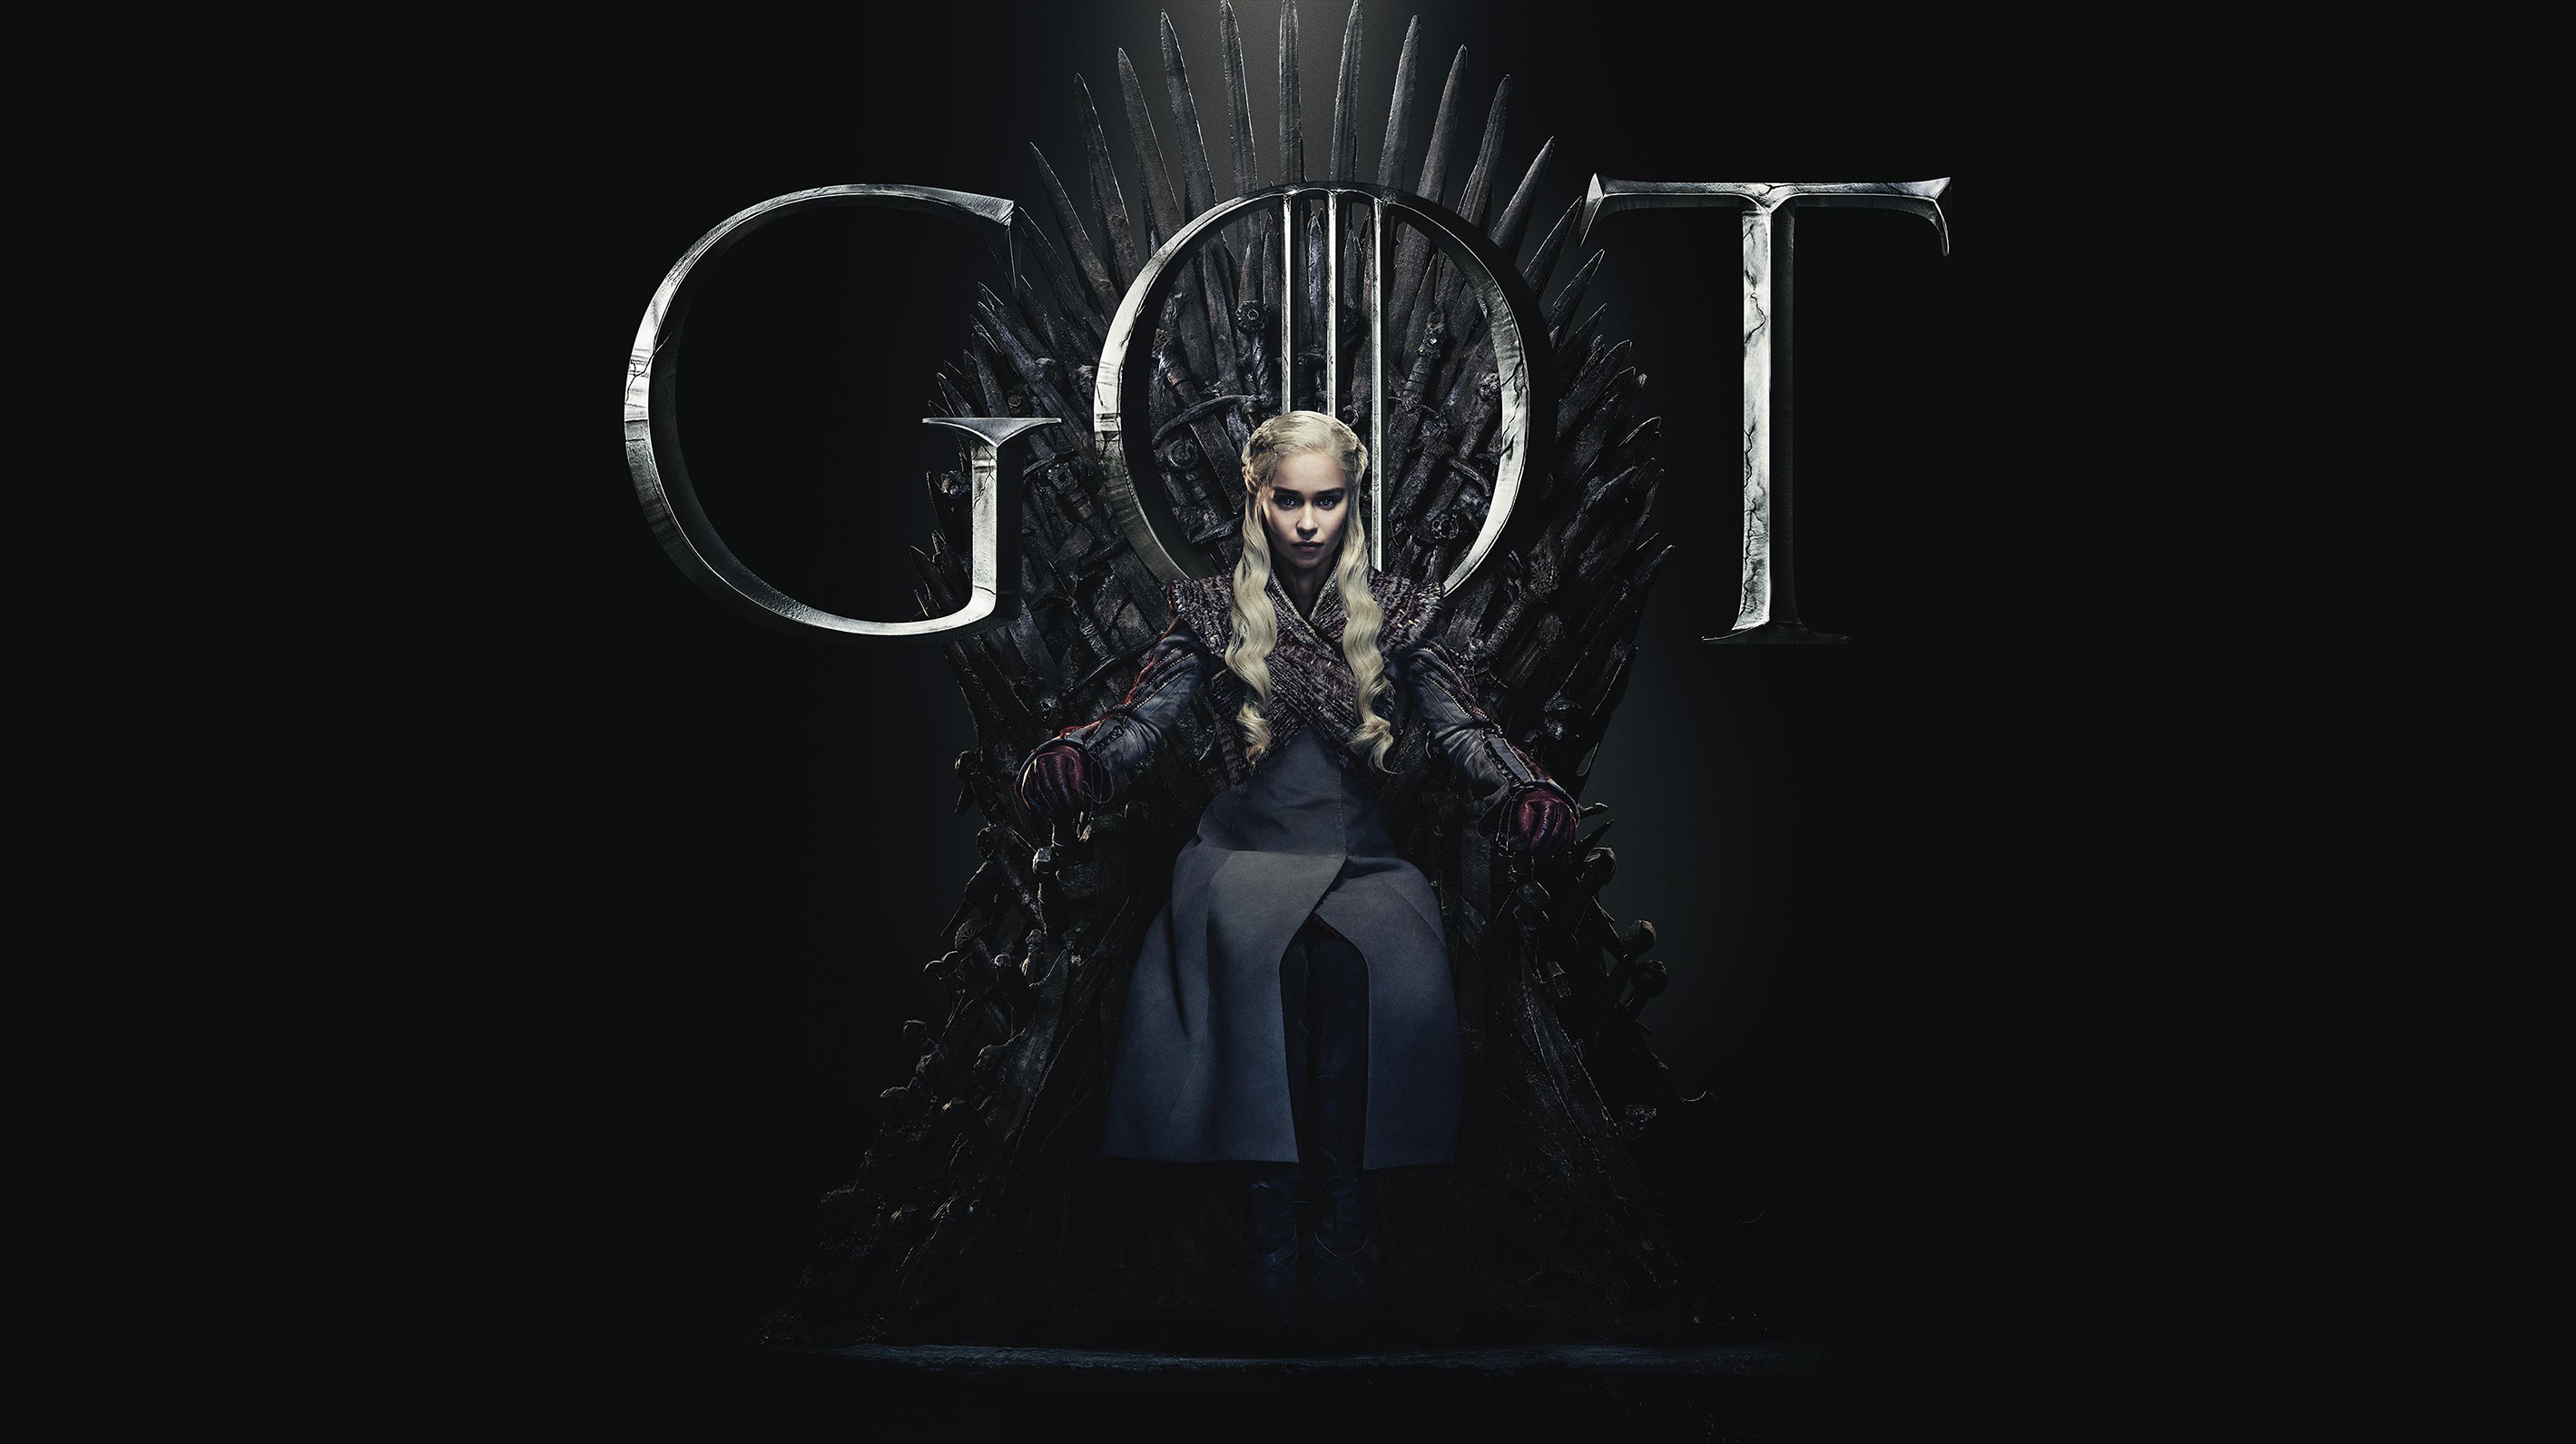 Daenerys Targaryen Game Of Thrones Season 8 Poster Wallpaper Hd